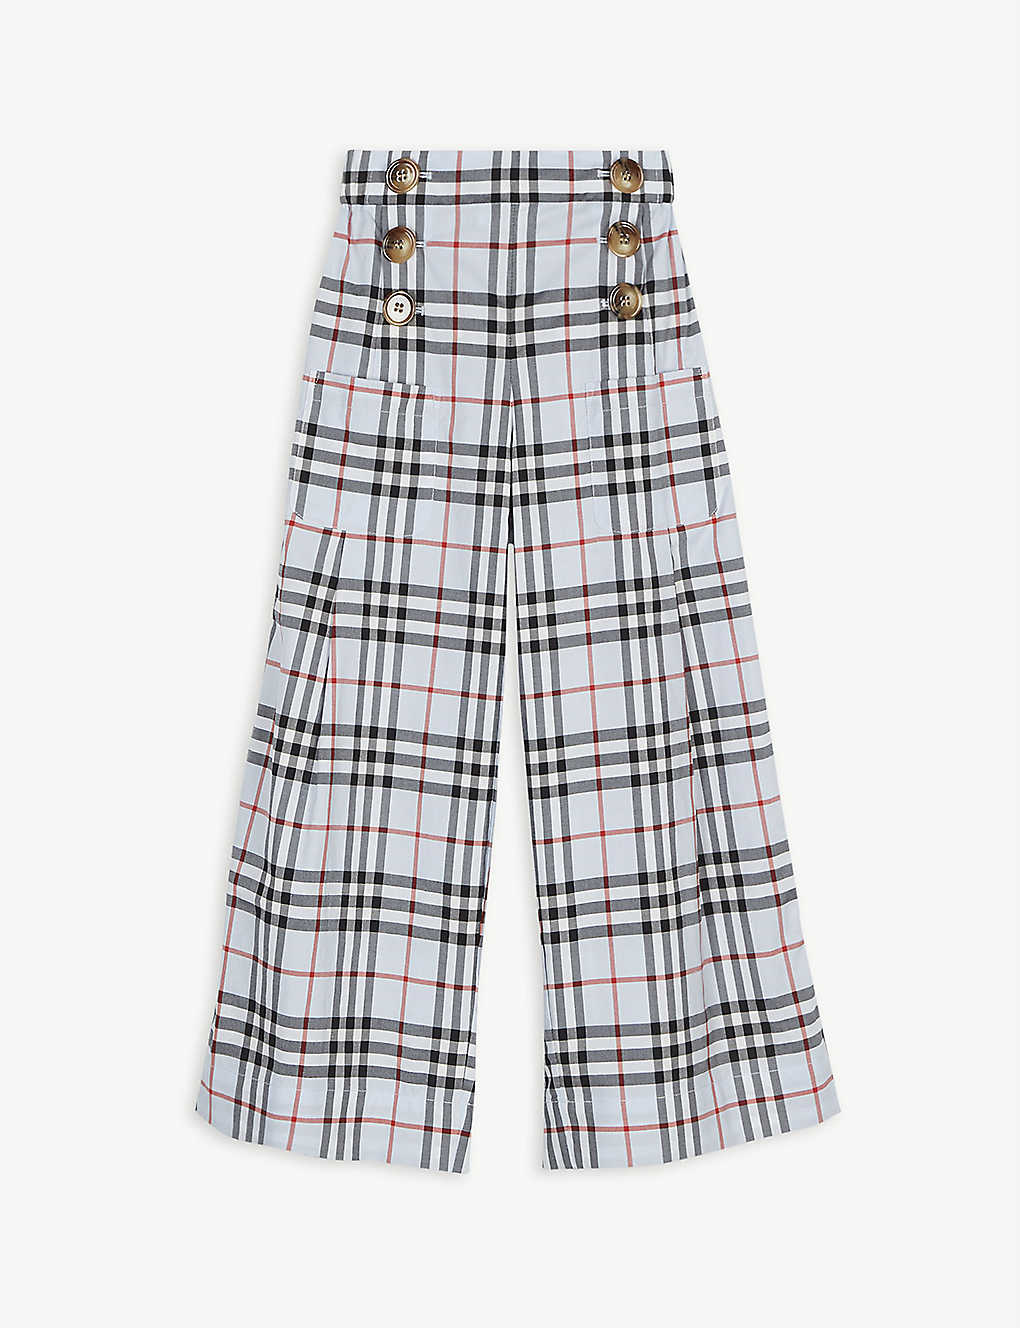 BURBERRY: Check culottes 3-14 years